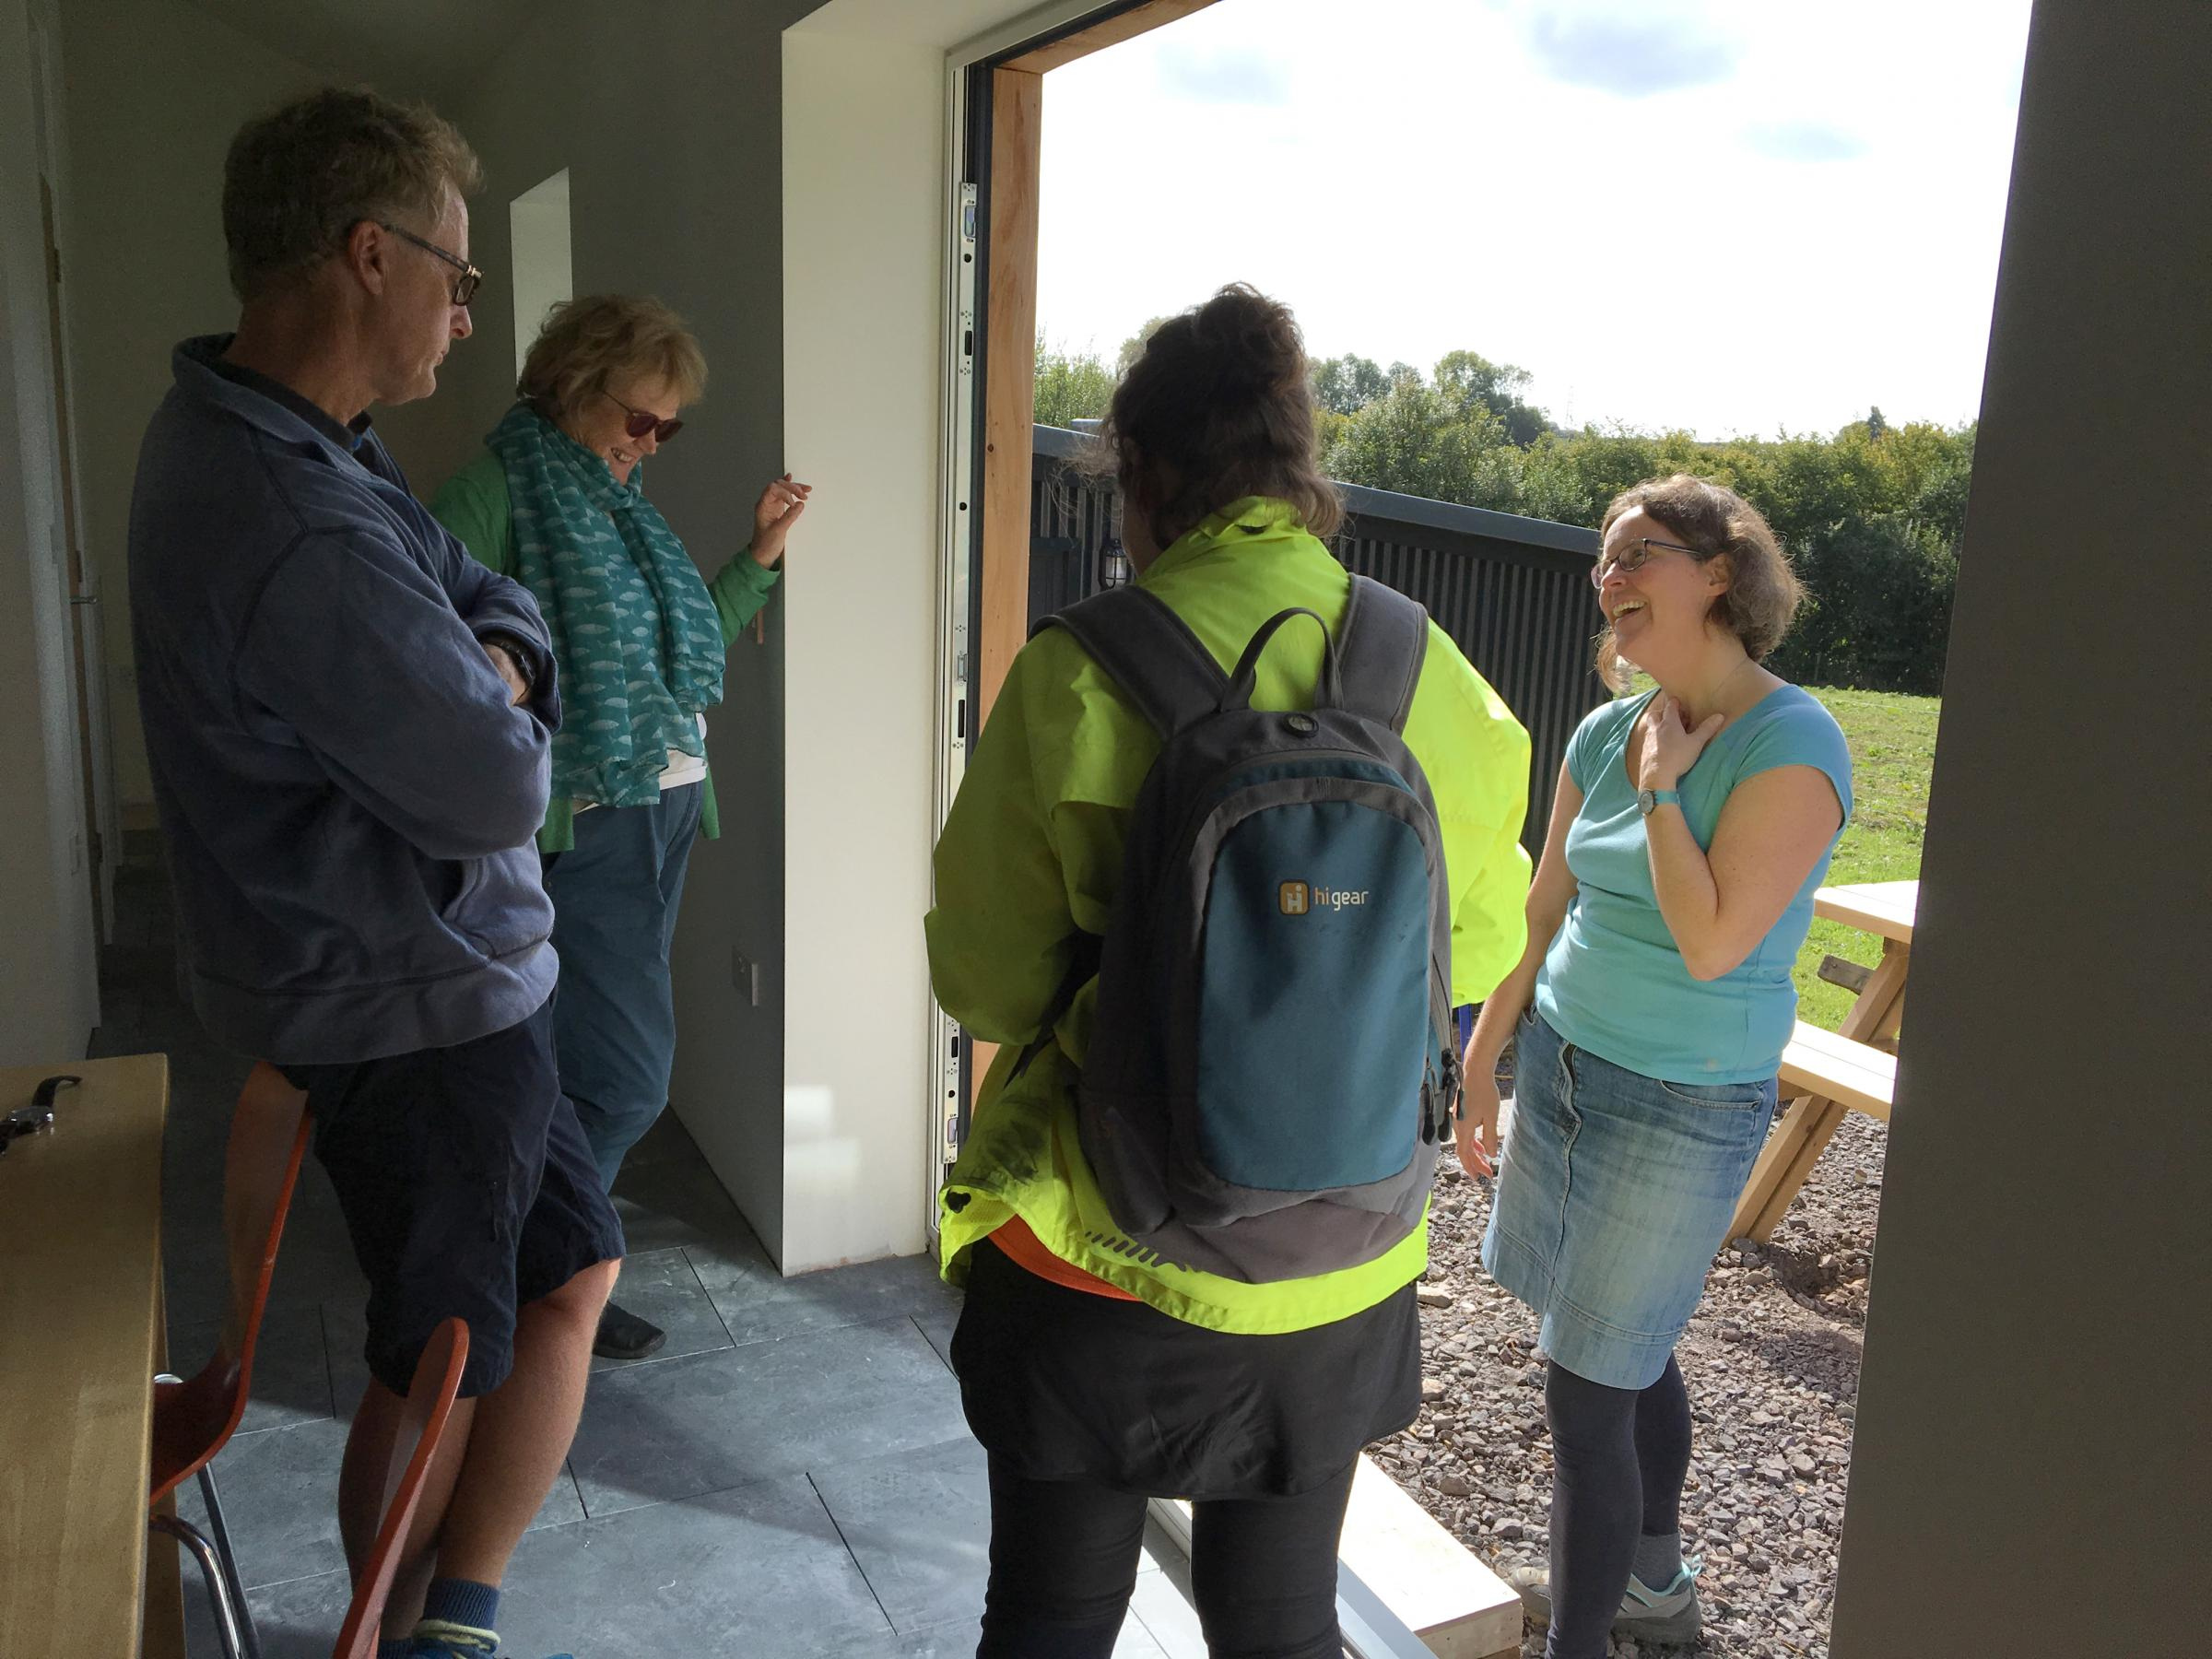 Sixteen homes to open for Transition Town Bridport's Greener Homes